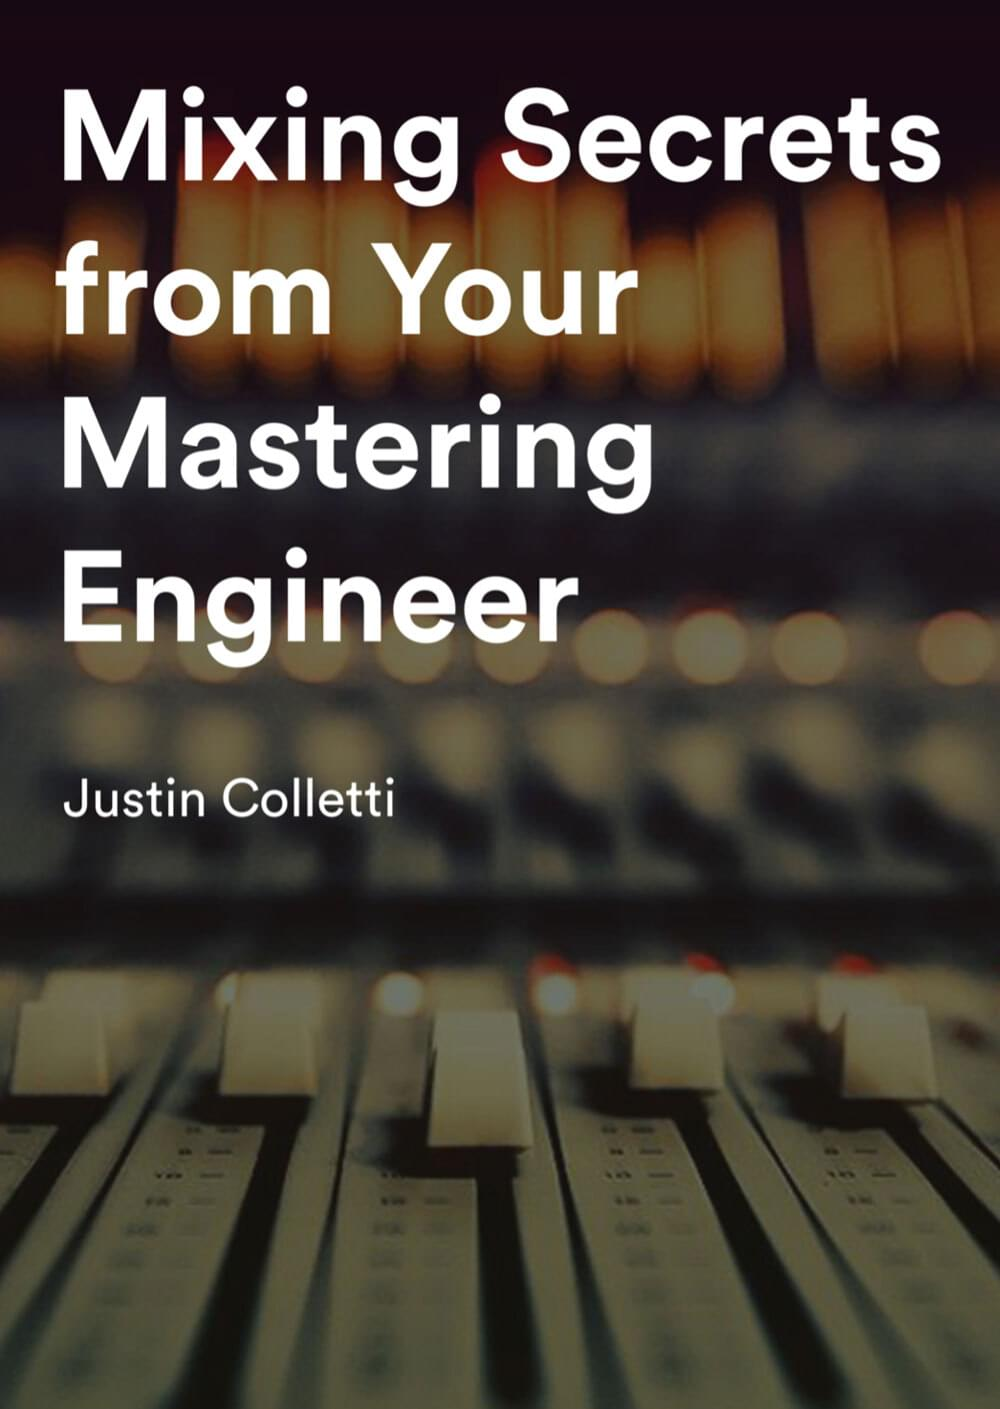 Mixing Secrets from your Mastering Engineer eBook